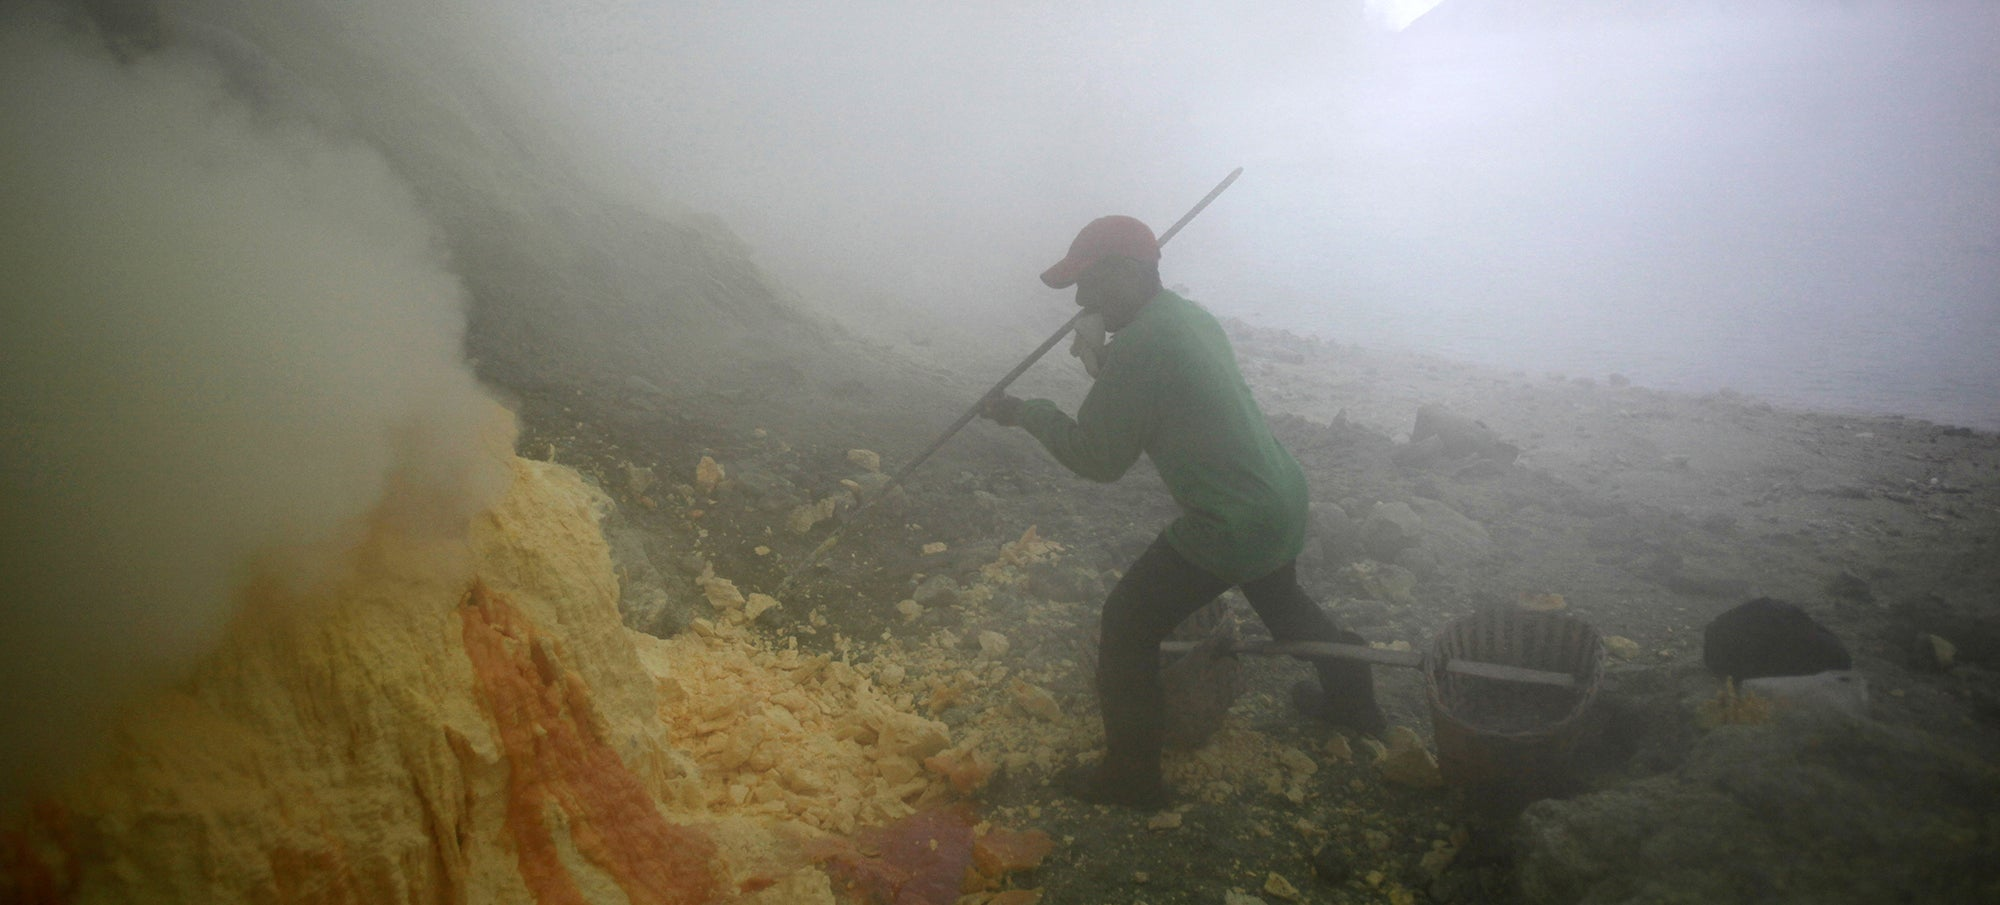 Inside the Toxic Sulphur Quarries That Keep Your Tires Rolling